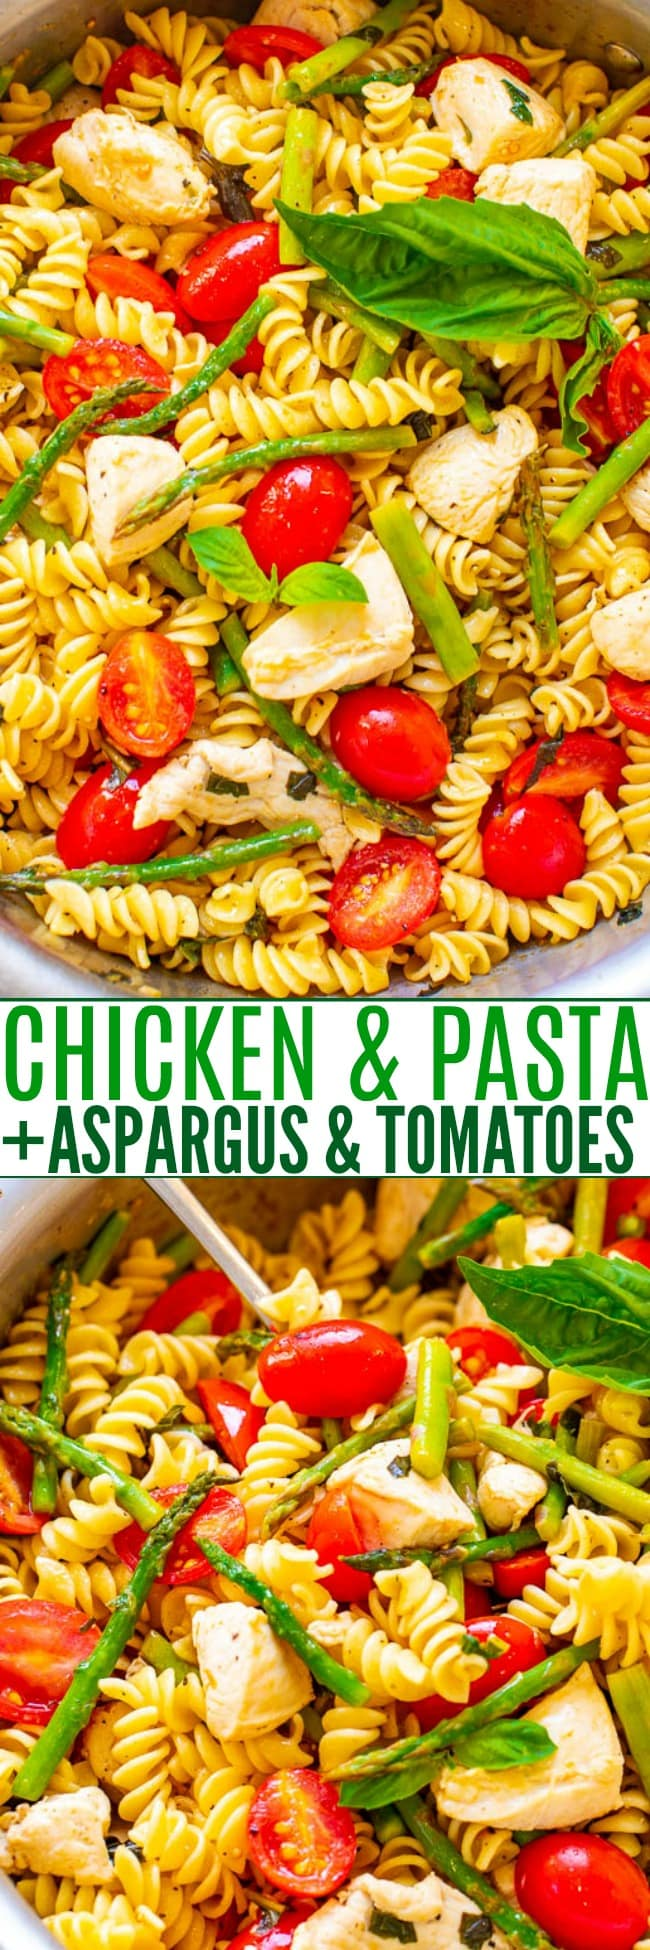 Chicken and Pasta with Asparagus and Tomatoes - EASY, ready in 20 minutes, and the asparagus, tomatoes, and basil keep this chicken and pasta recipe tasting LIGHTER and FRESHER!! Perfect for picnics, potlucks, and busy weeknight dinners!!